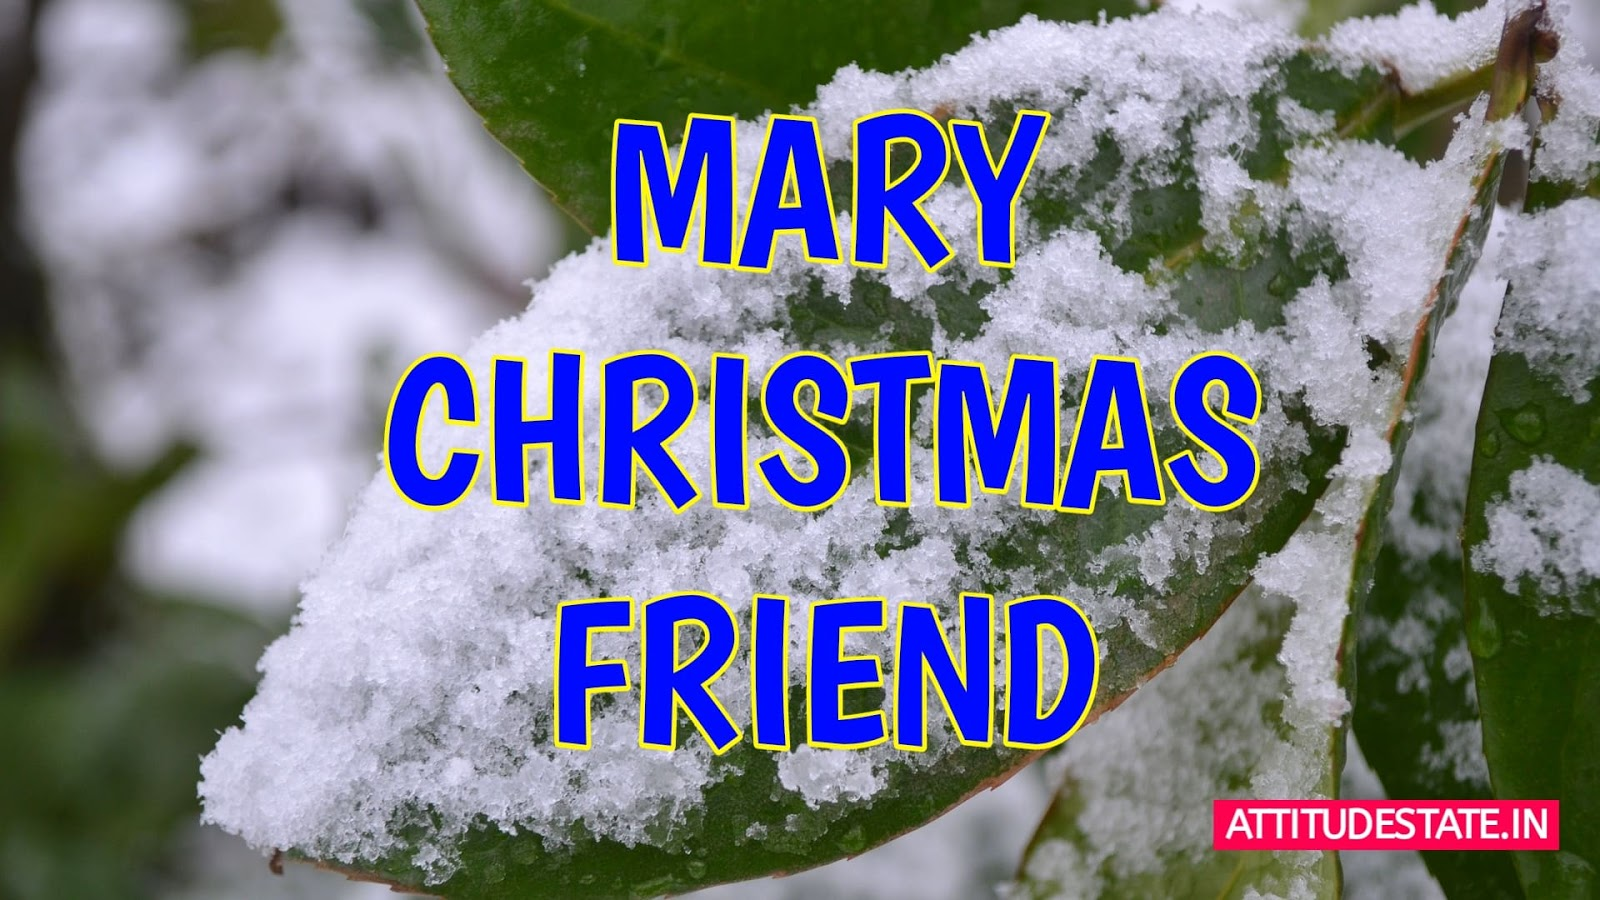 Best Merry Christmas Images